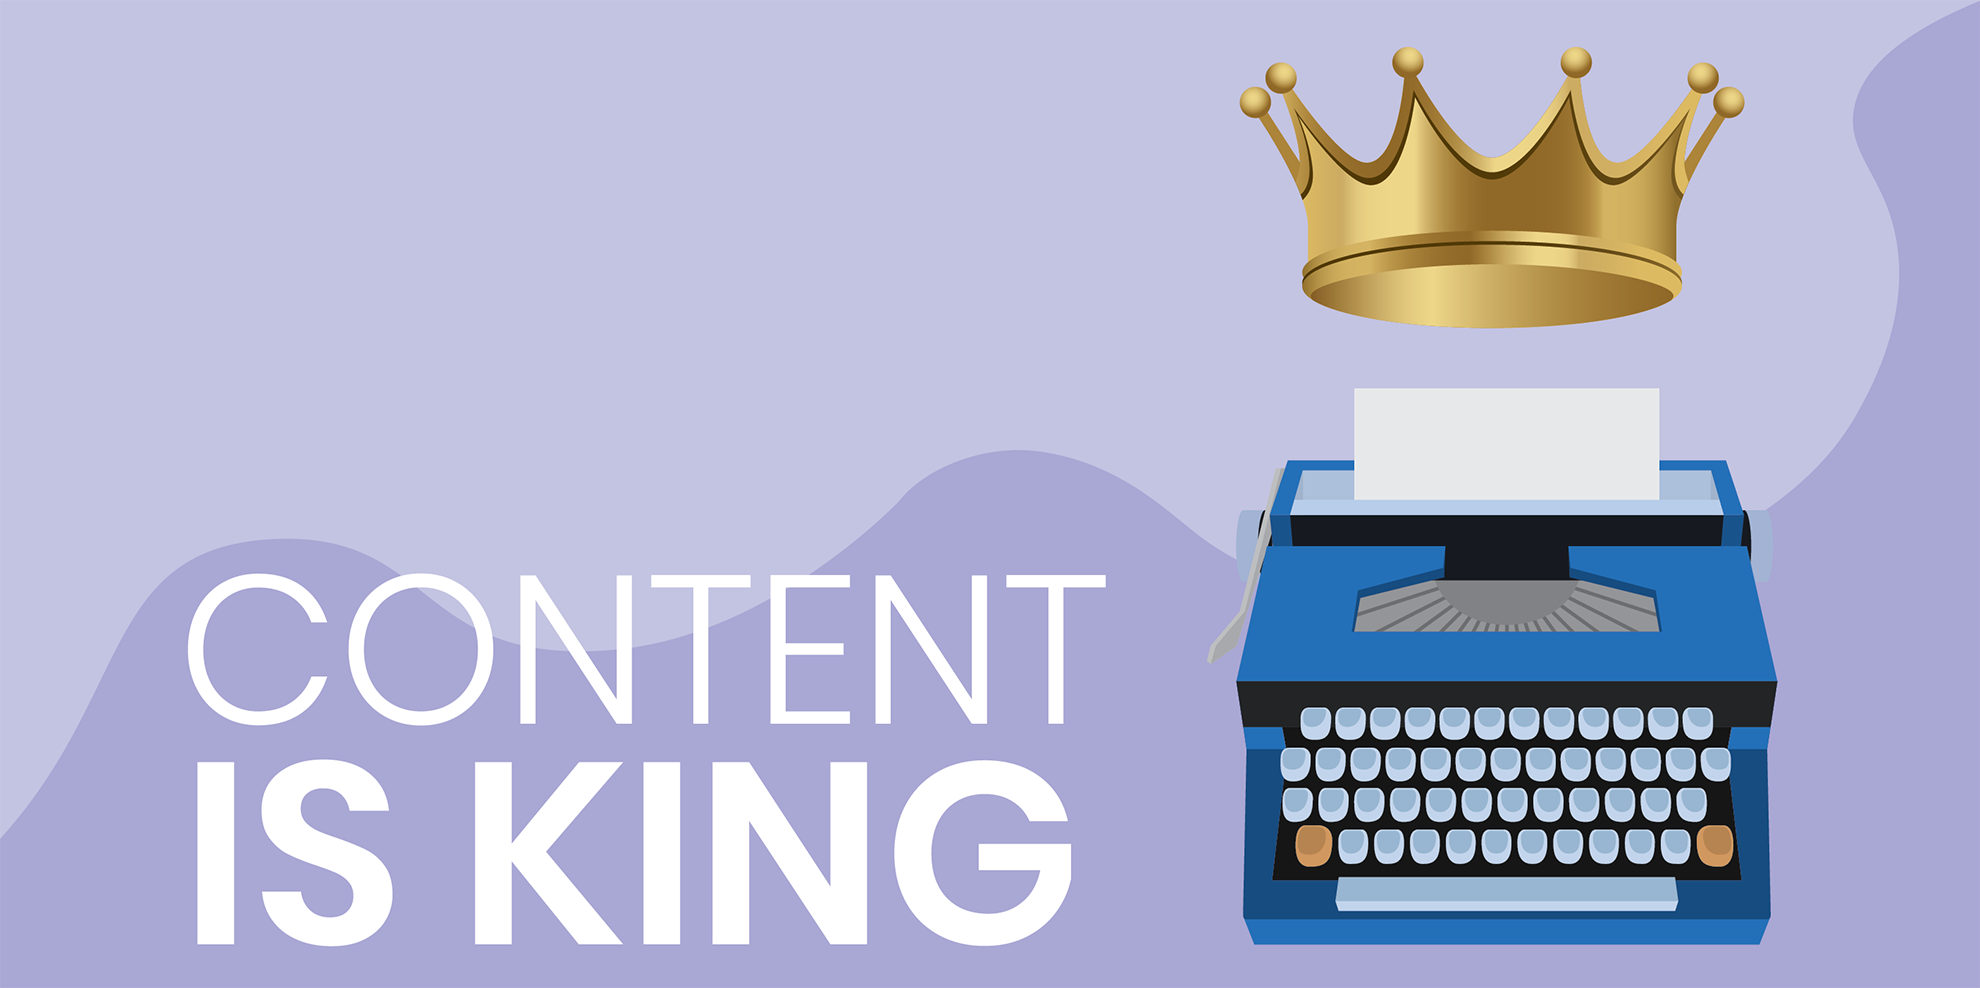 Illustration of how Content is King (by Global Reach)